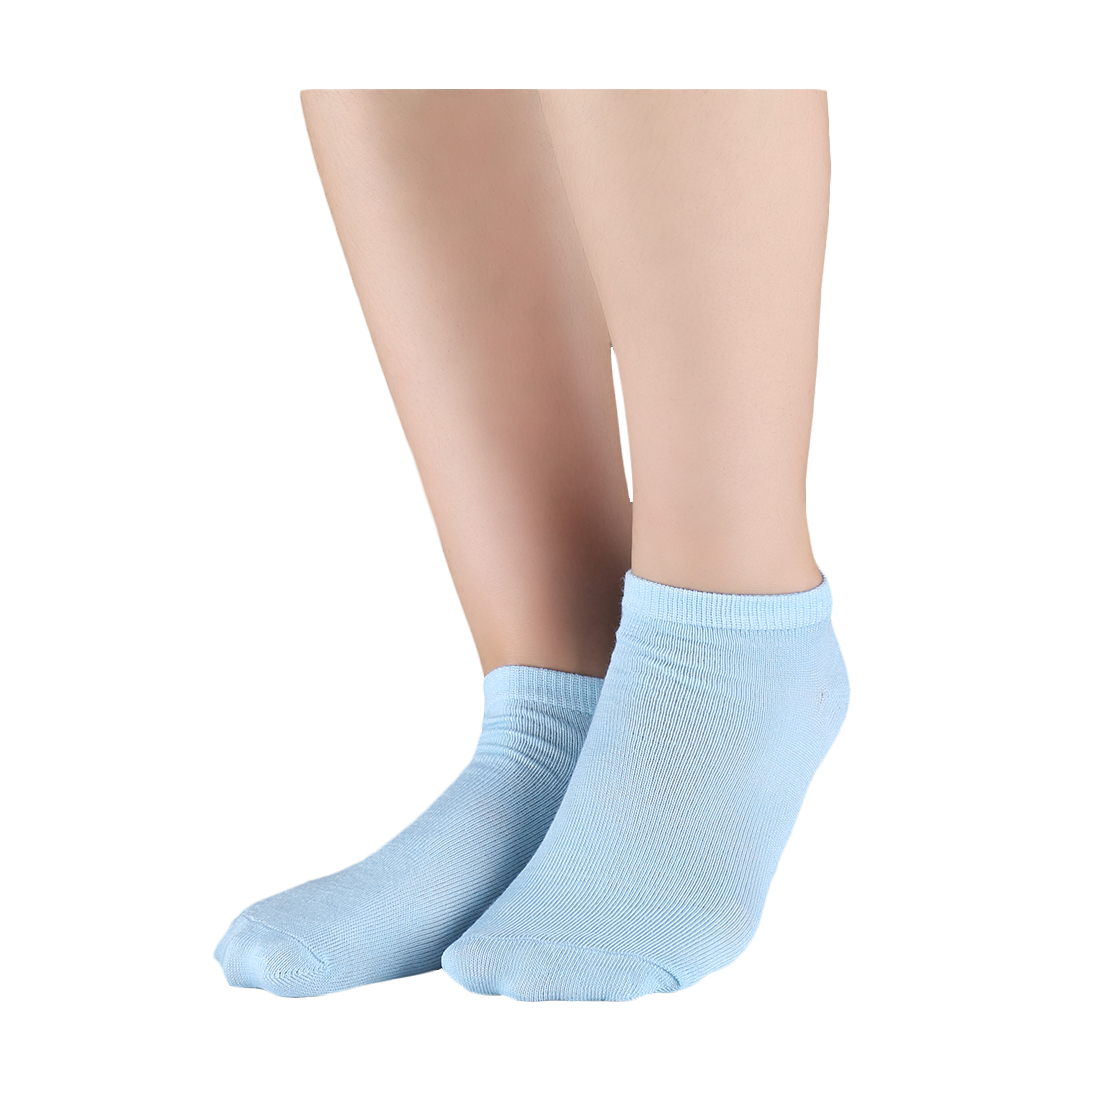 Athletic Low Cut Ankle Socks-Stretch Cuffs Soft 10 Pairs Blue XXS